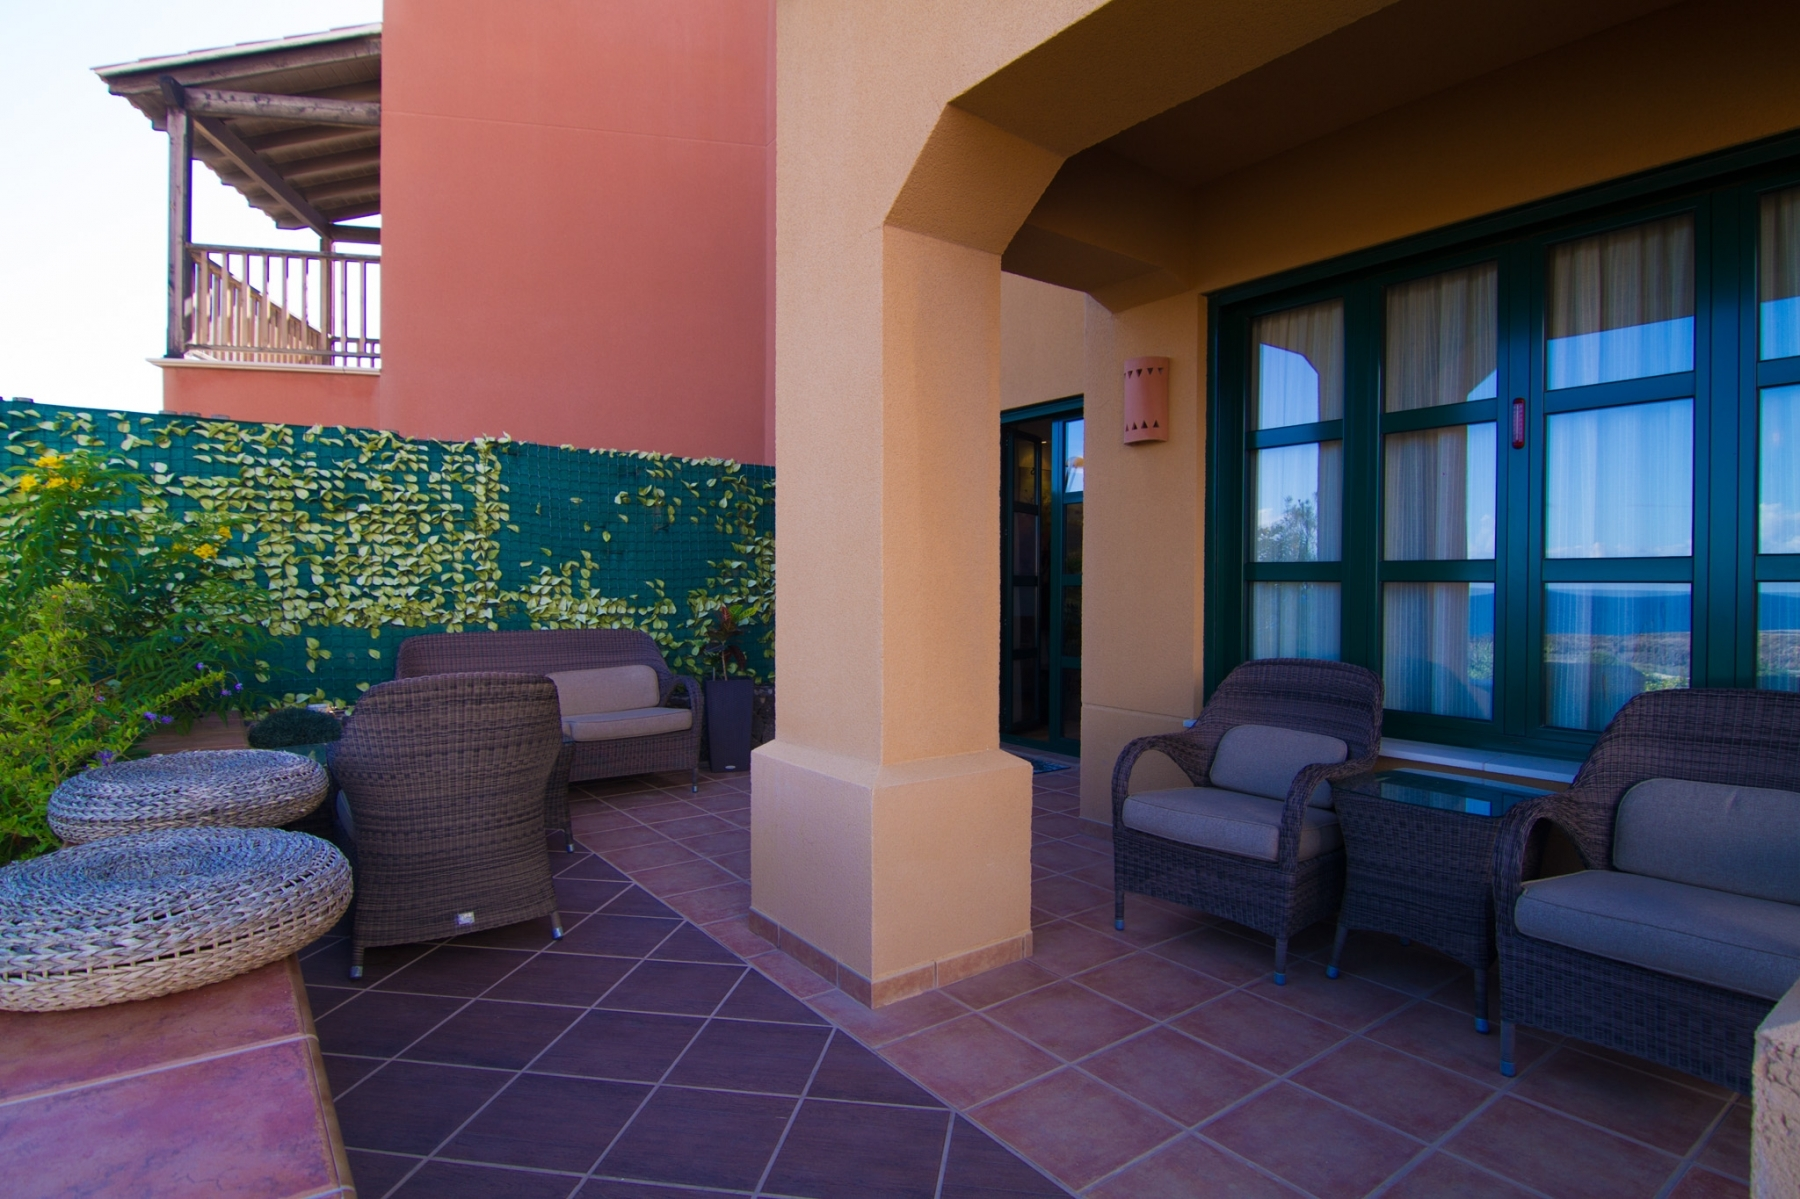 Properties for Sale in Tenerife, Canary Islands, Spain | SylkWayStar Real Estate. Luxury 3 bedrooms townhouse on the first line - San Blas . Image-22465